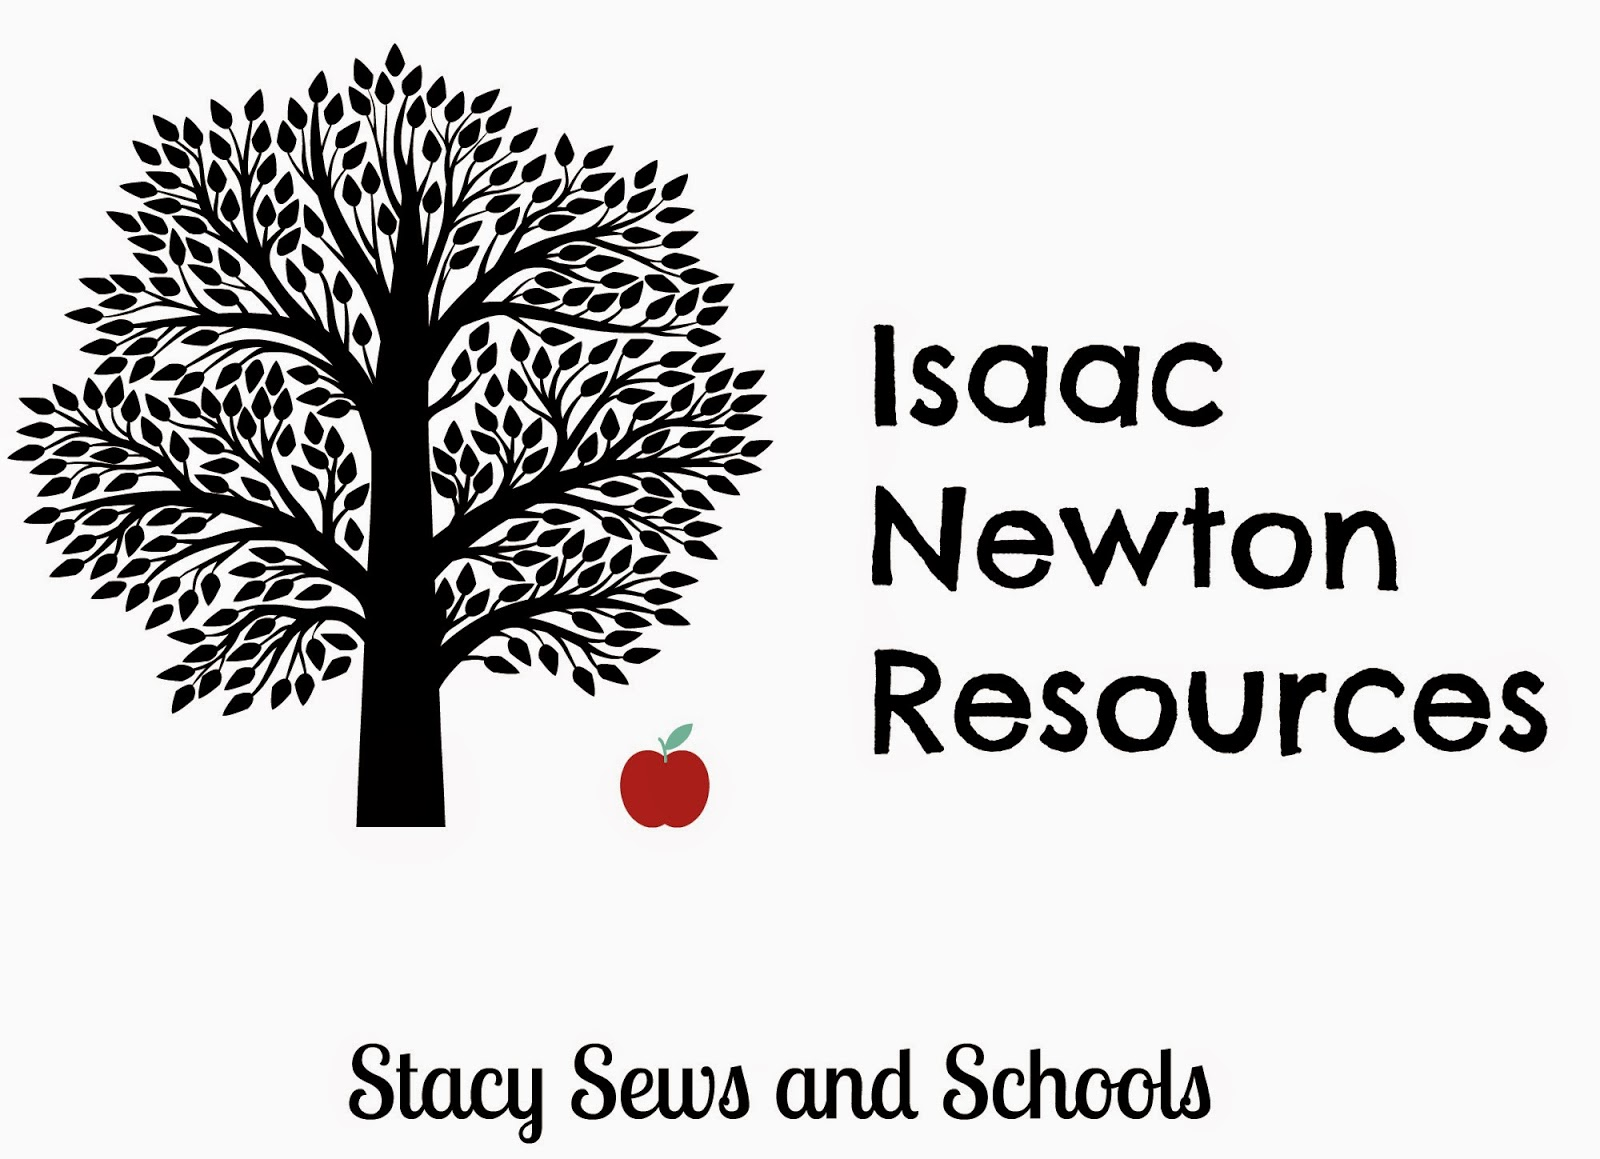 Stacy Sews and Schools: Isaac Newton Learning Resources